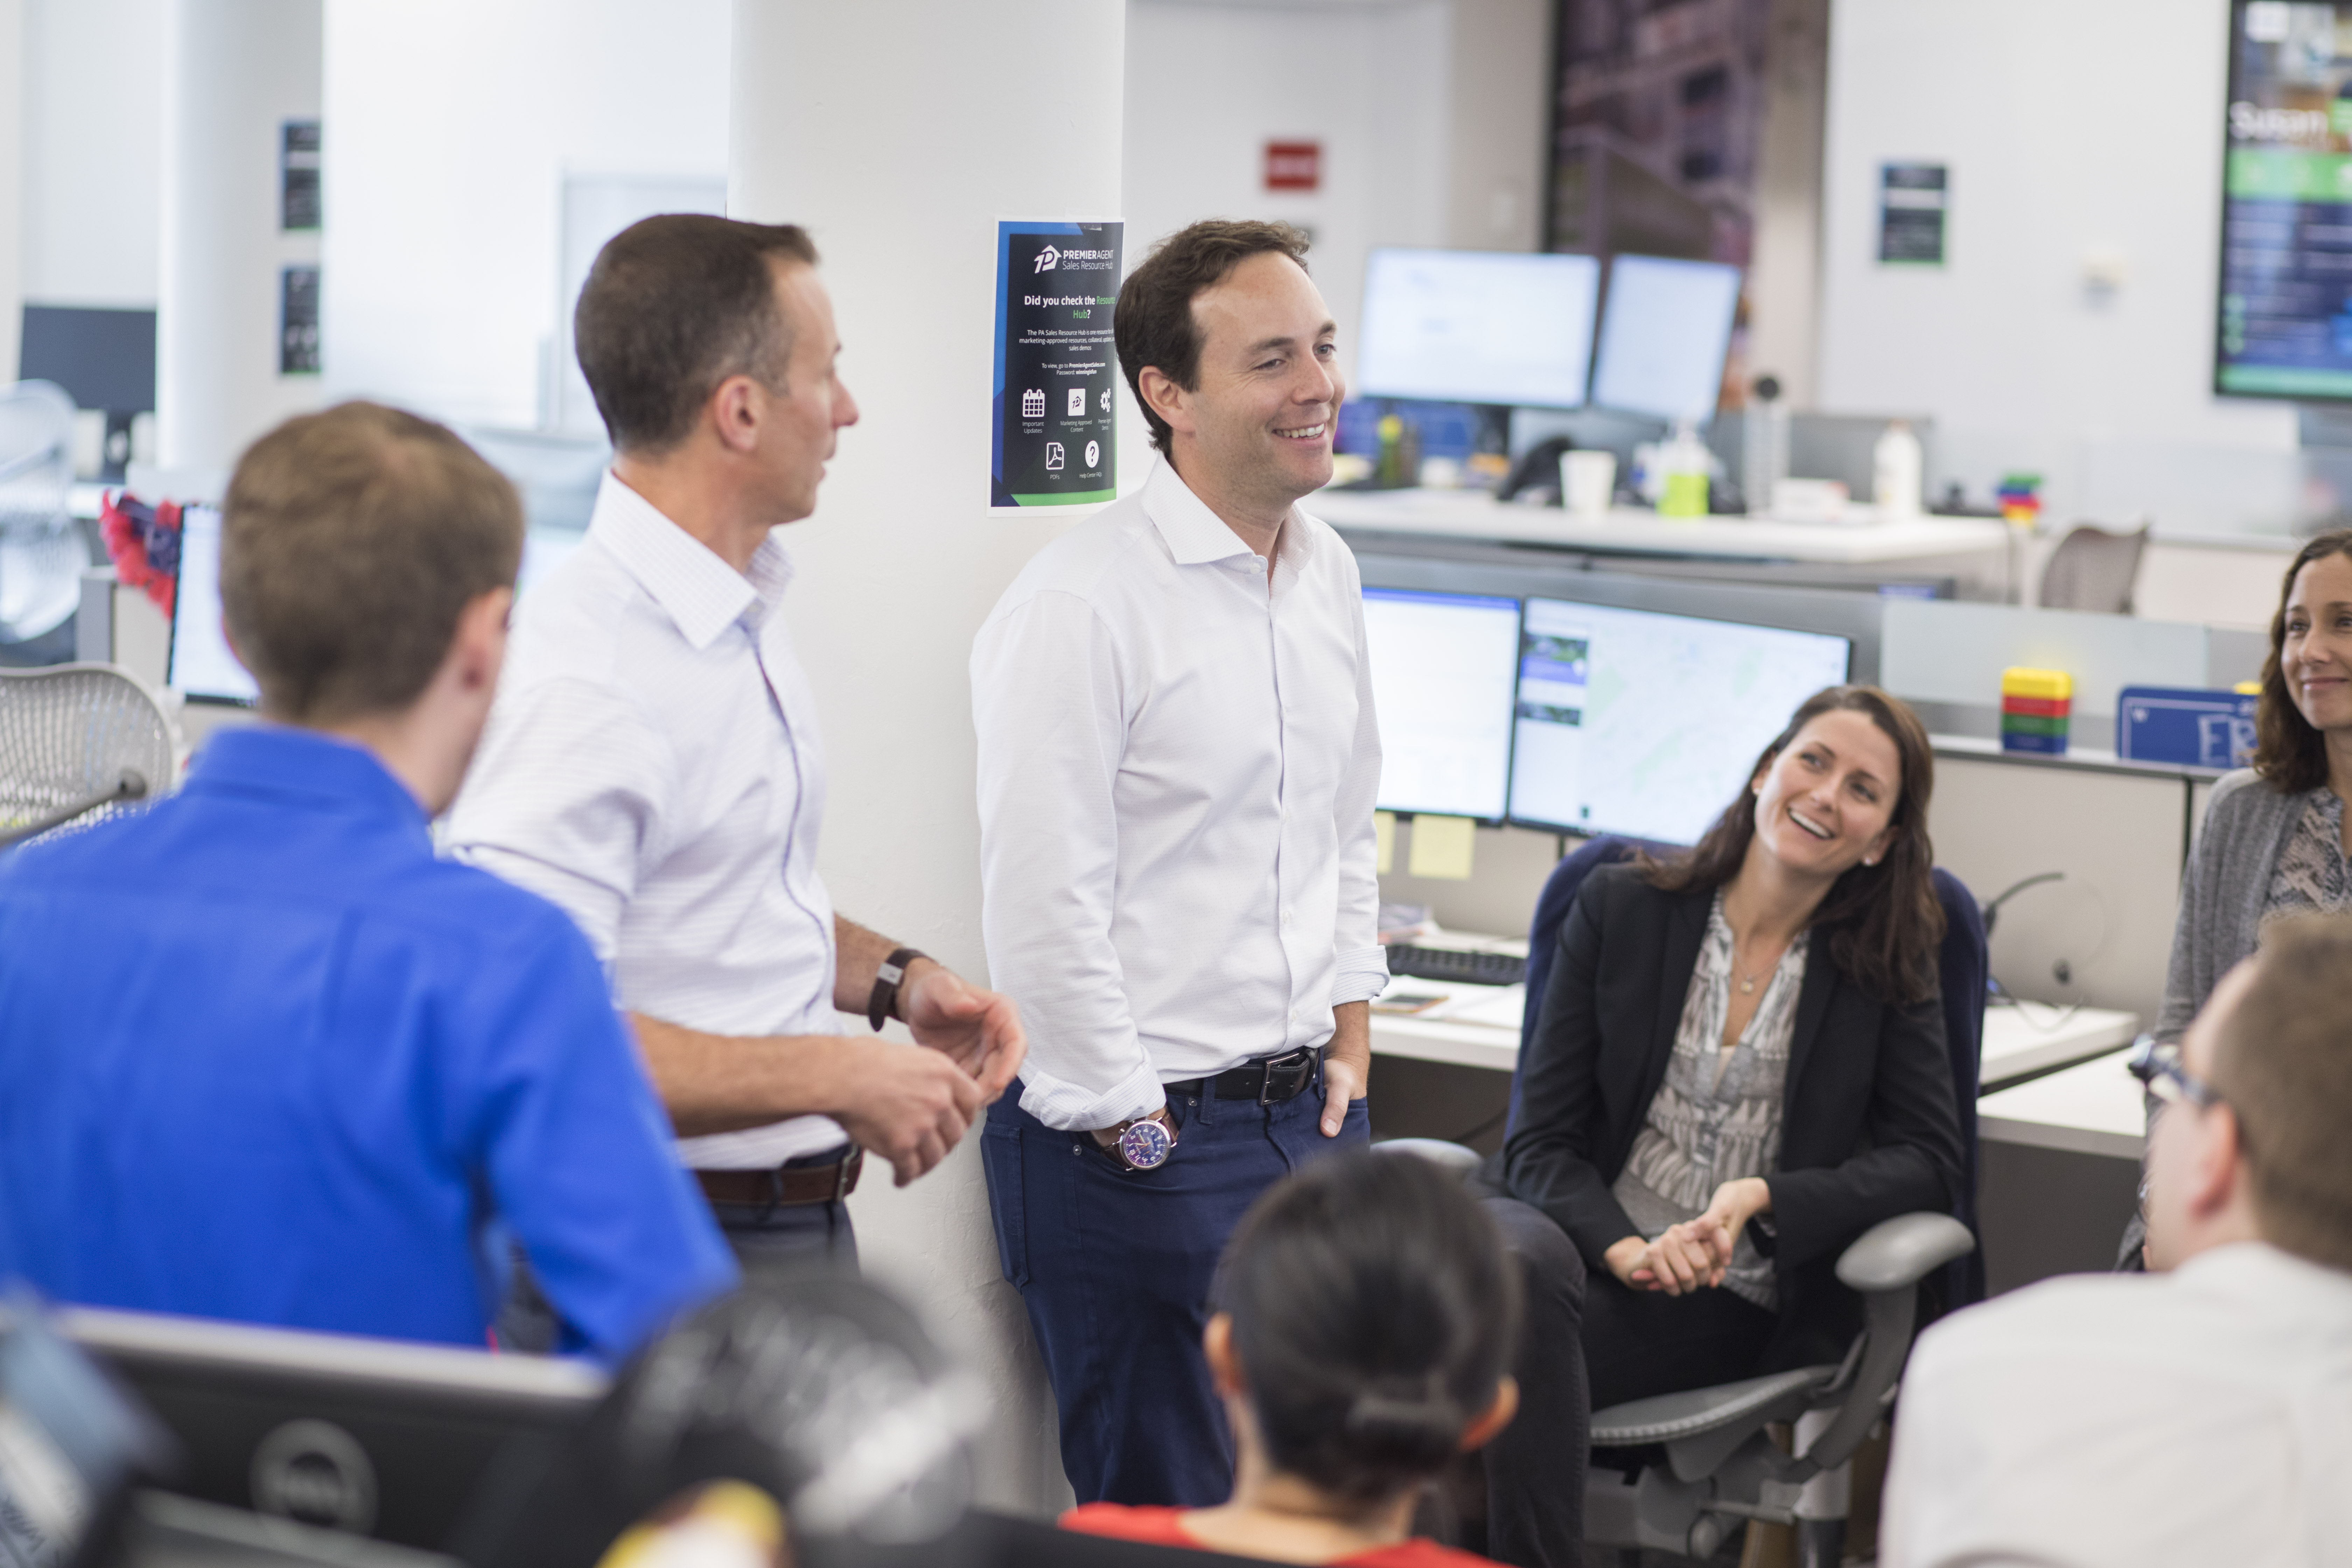 Zillow CEO Spencer Rascoff visits company office in New York City.